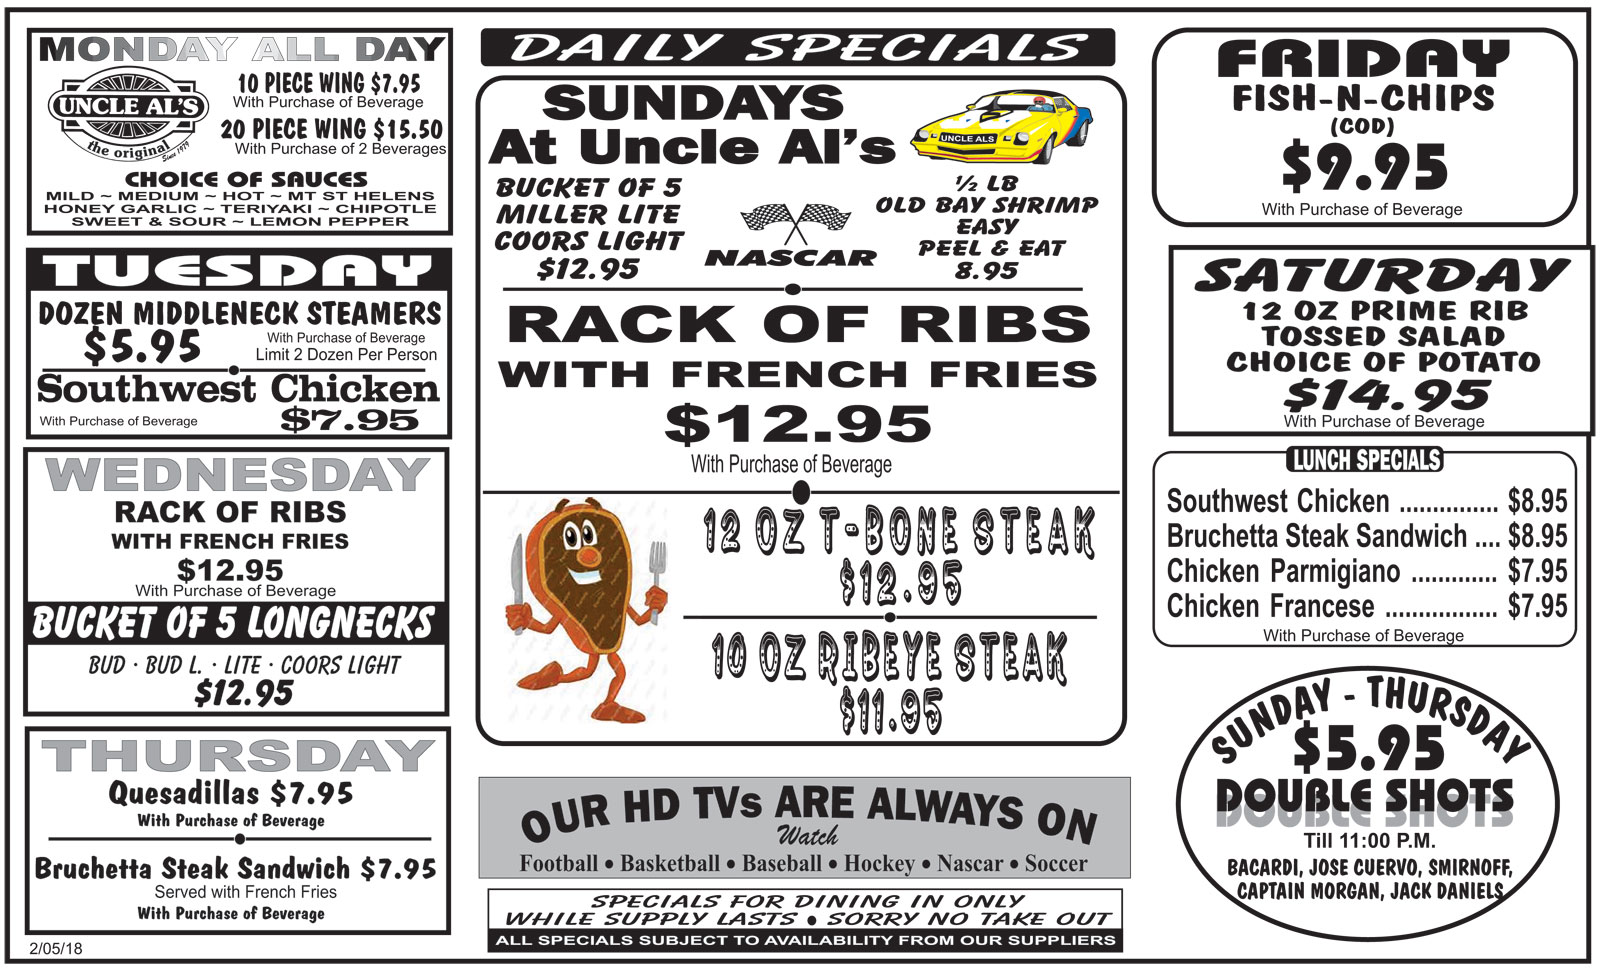 Daily Specials - Uncle Al's Davie - Restaurant and Bar